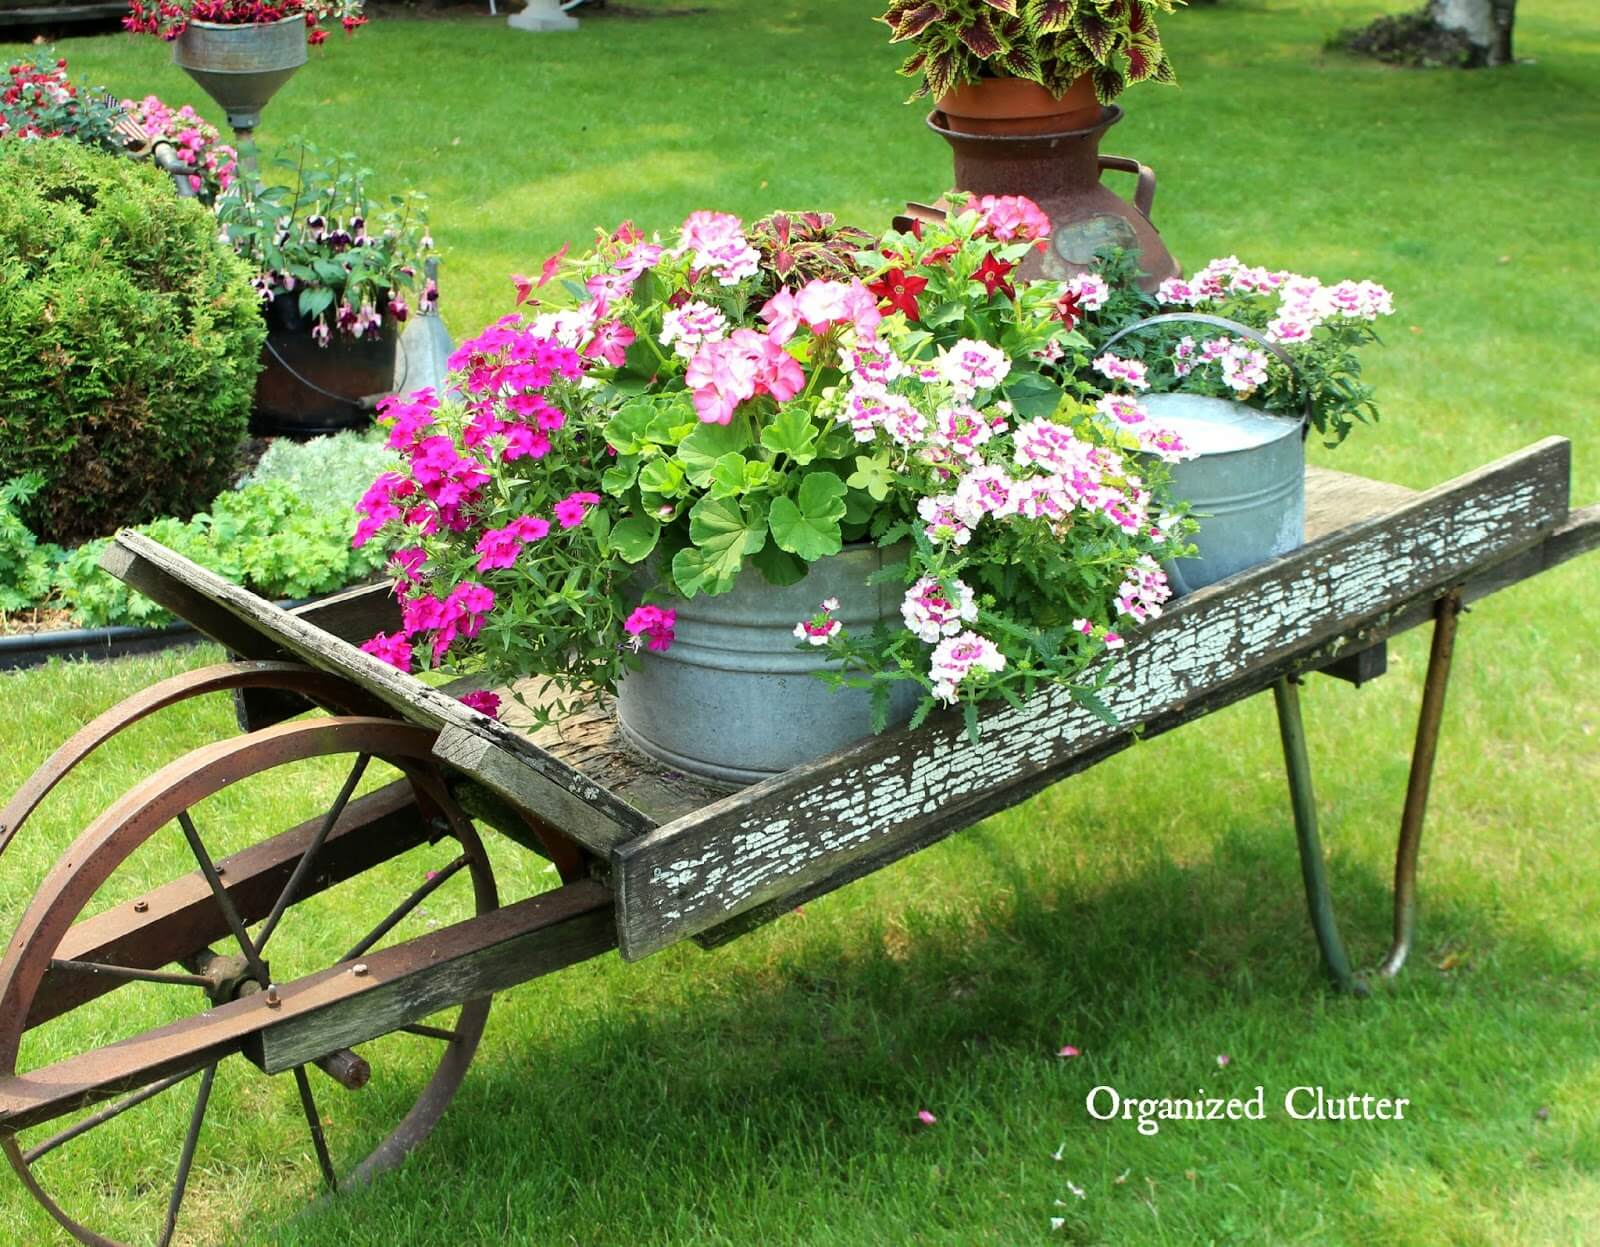 Vintage Garden Decor Ideas: Wheelbarrow Vintage Garden Flower Display